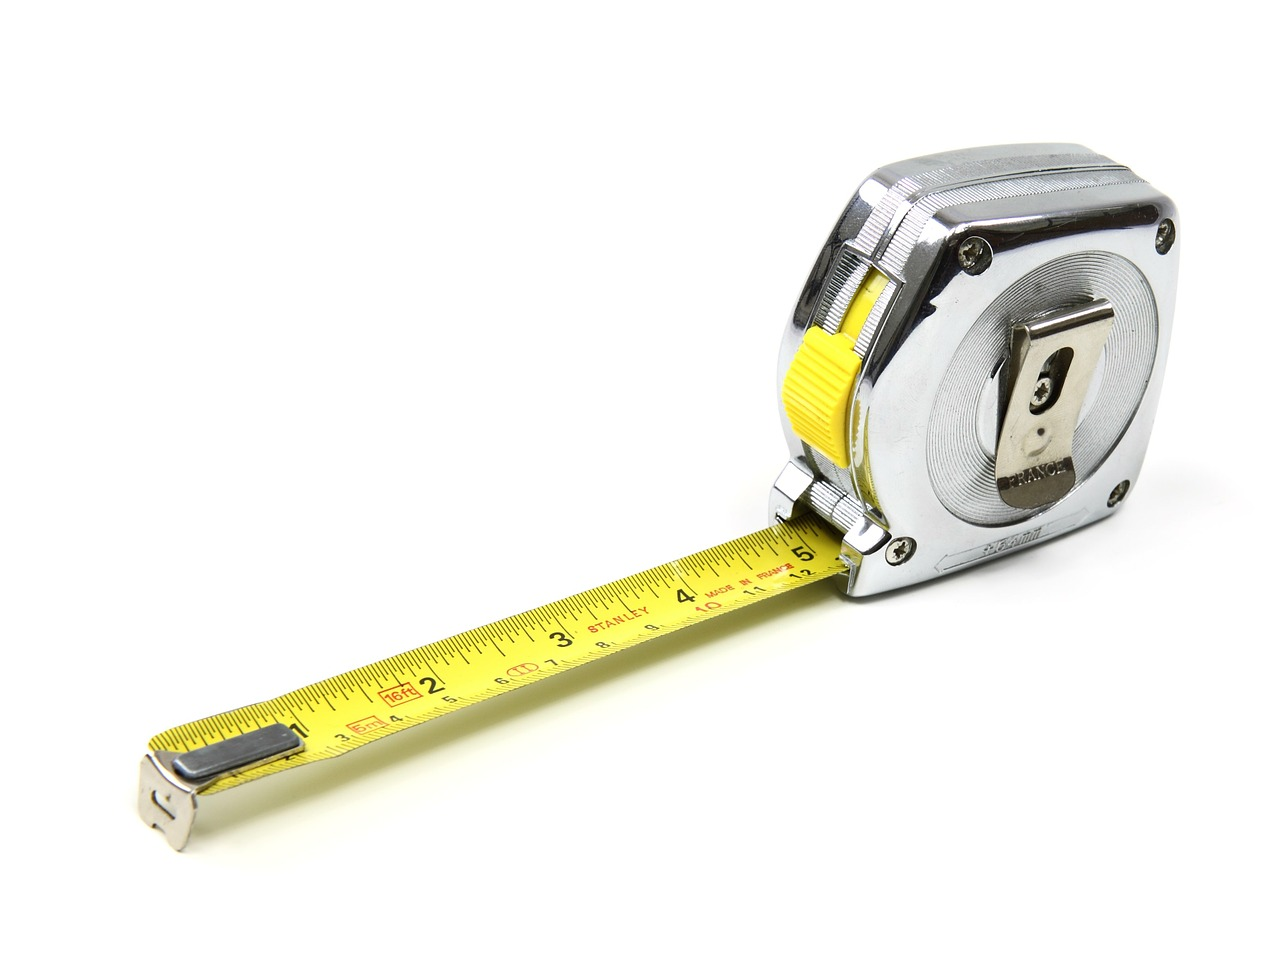 centimeter-2261_1280 The Top 11 Essential Hand Tools